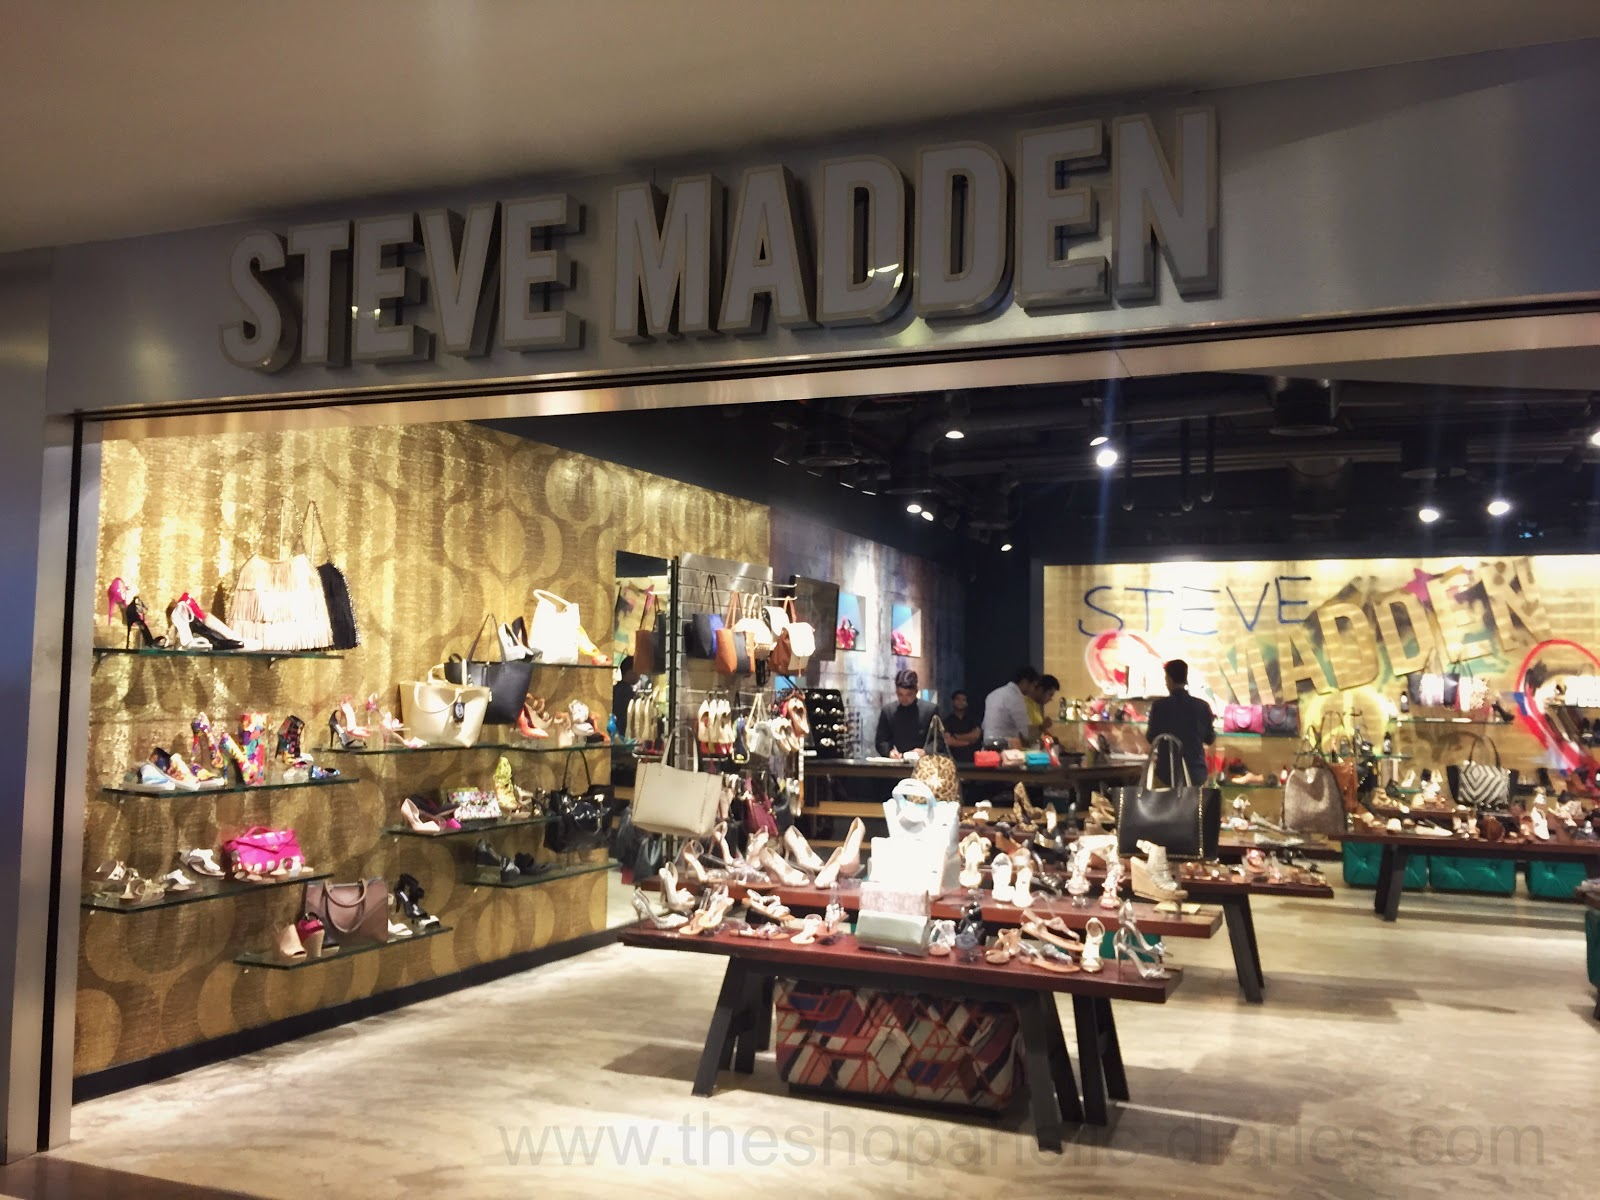 STEVE MADDEN - Knowing my love for STEVE MADDEN shoes, I really can't begin  this list without mentioning this iconic brand. Steve Madden is an  international ...